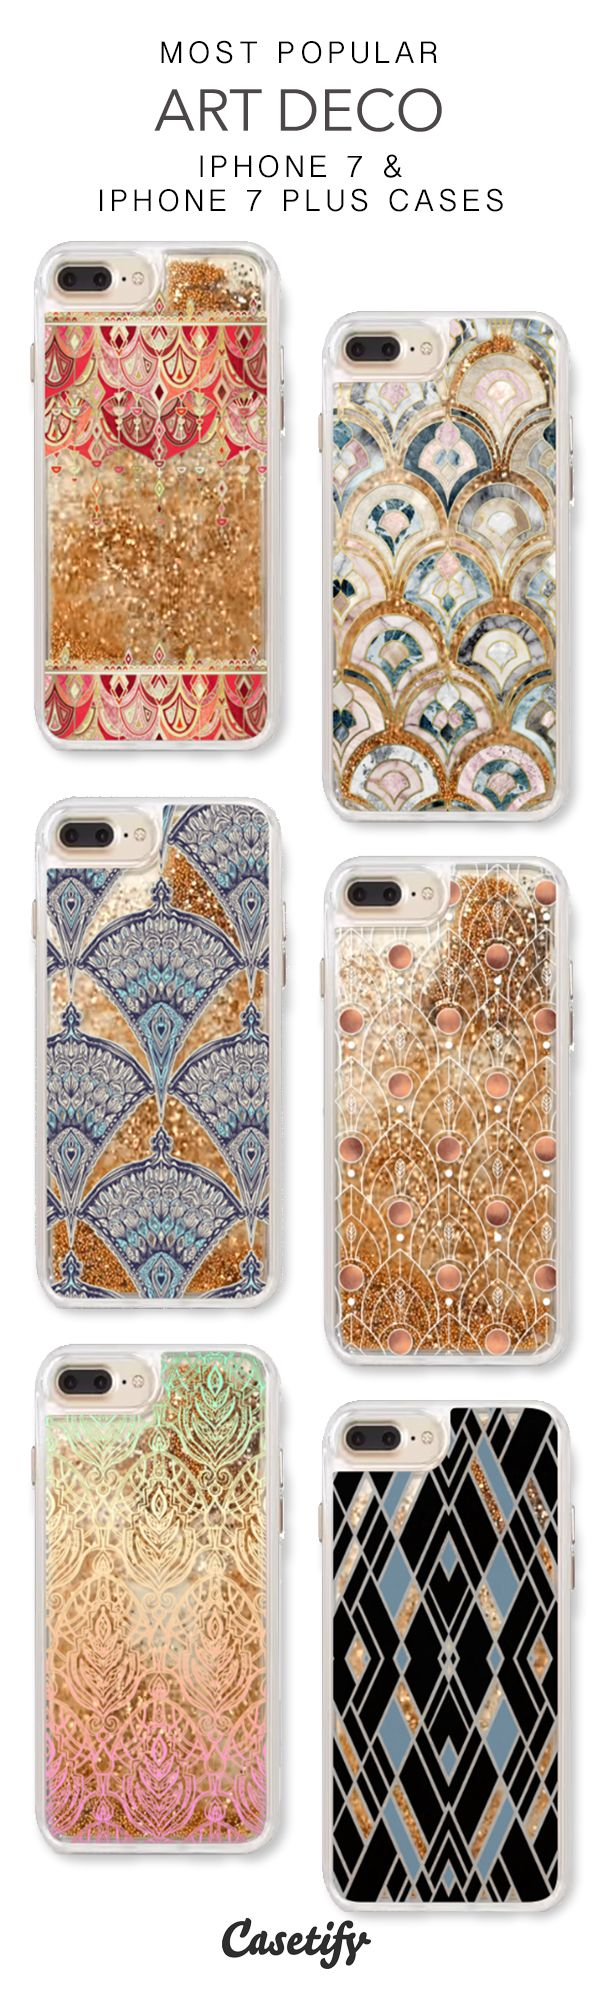 coque iphone 7 art deco